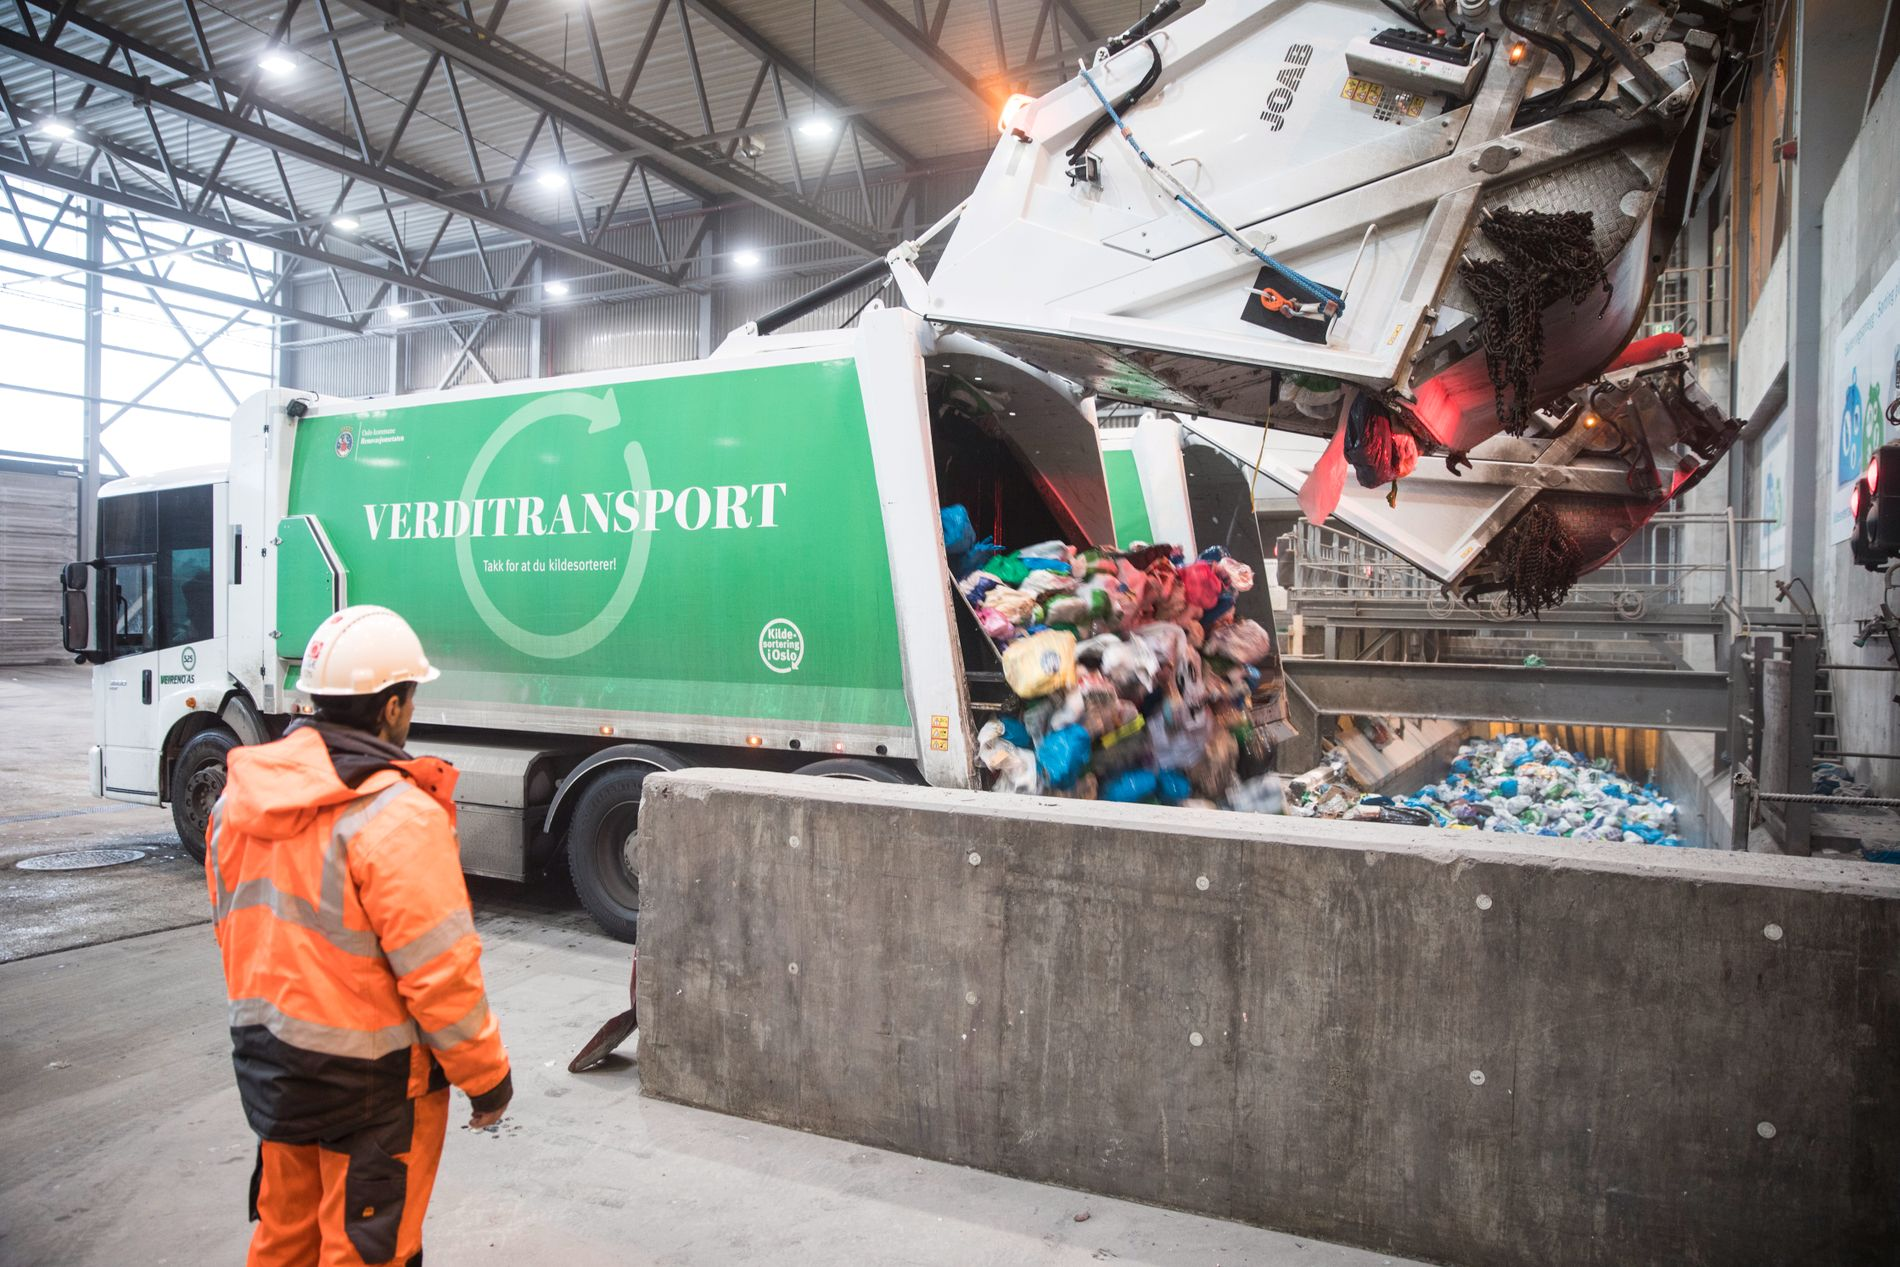 SØPPELBØBBEL: Oslo received a new supplier of renovation services on 3 October 2017. The former supplier, Veireno, had major problems with the collection of the waste. Here a car from Veireno in the Haraldrud treatment plant in January 2017.